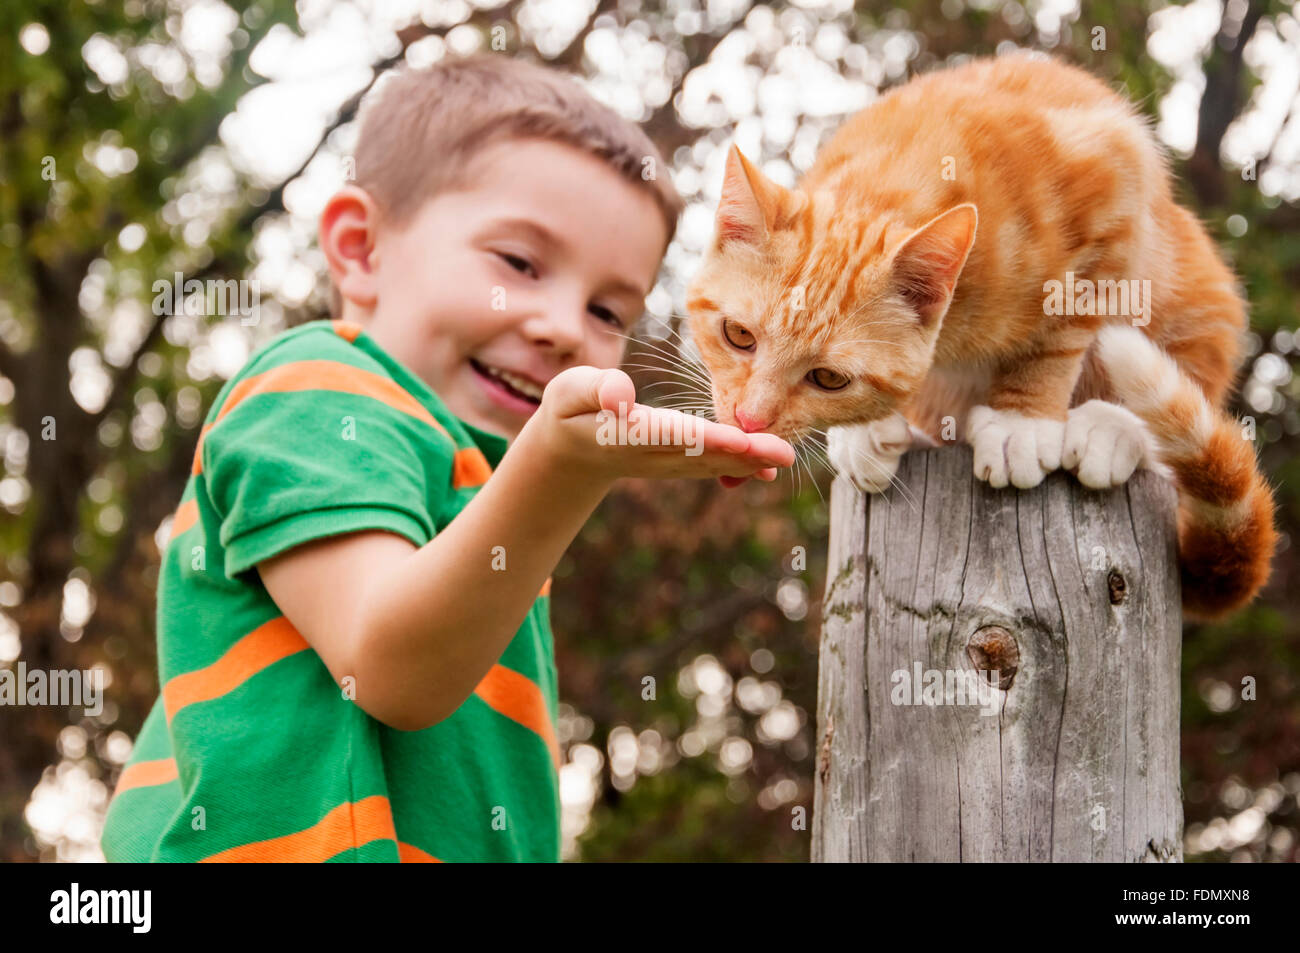 boy feeding cat with hand - Stock Image